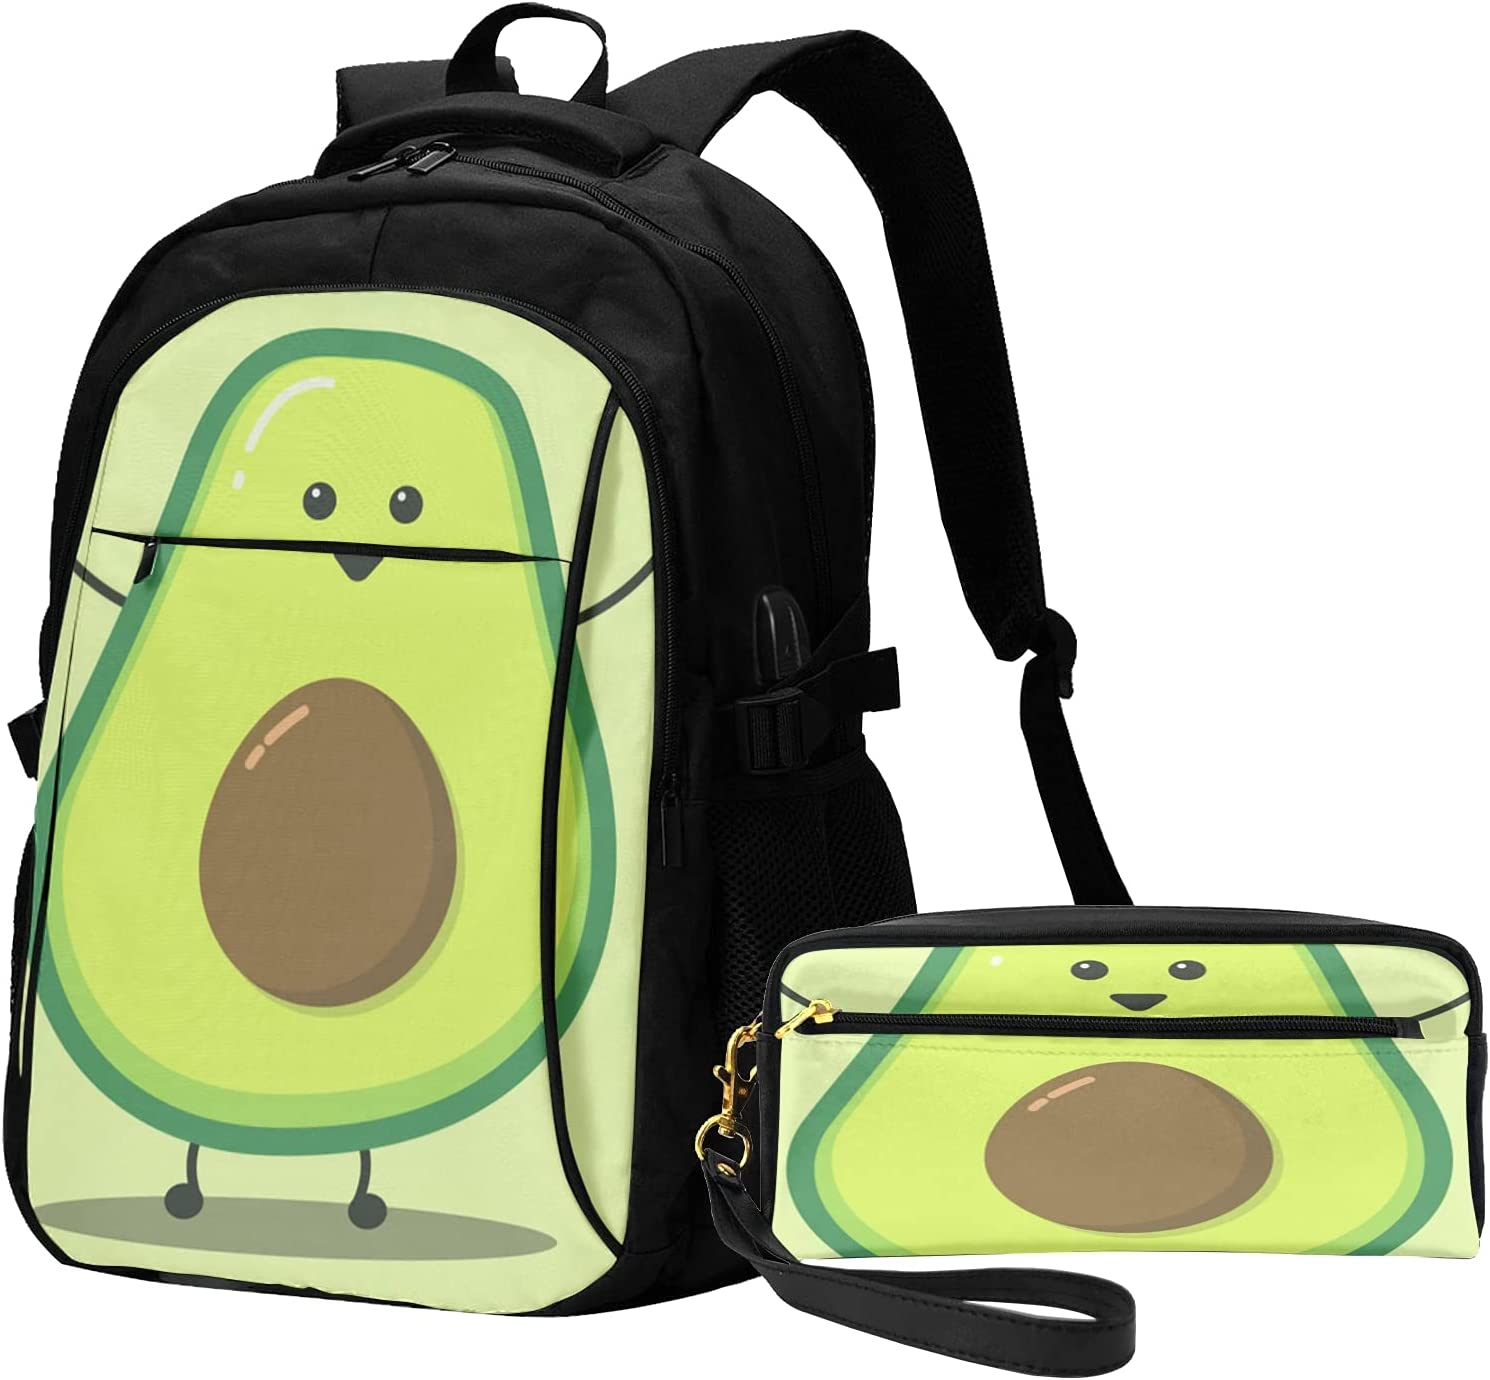 service Backpack With Usb Sales for sale Charging Headphone Schoo Zipper Double Port